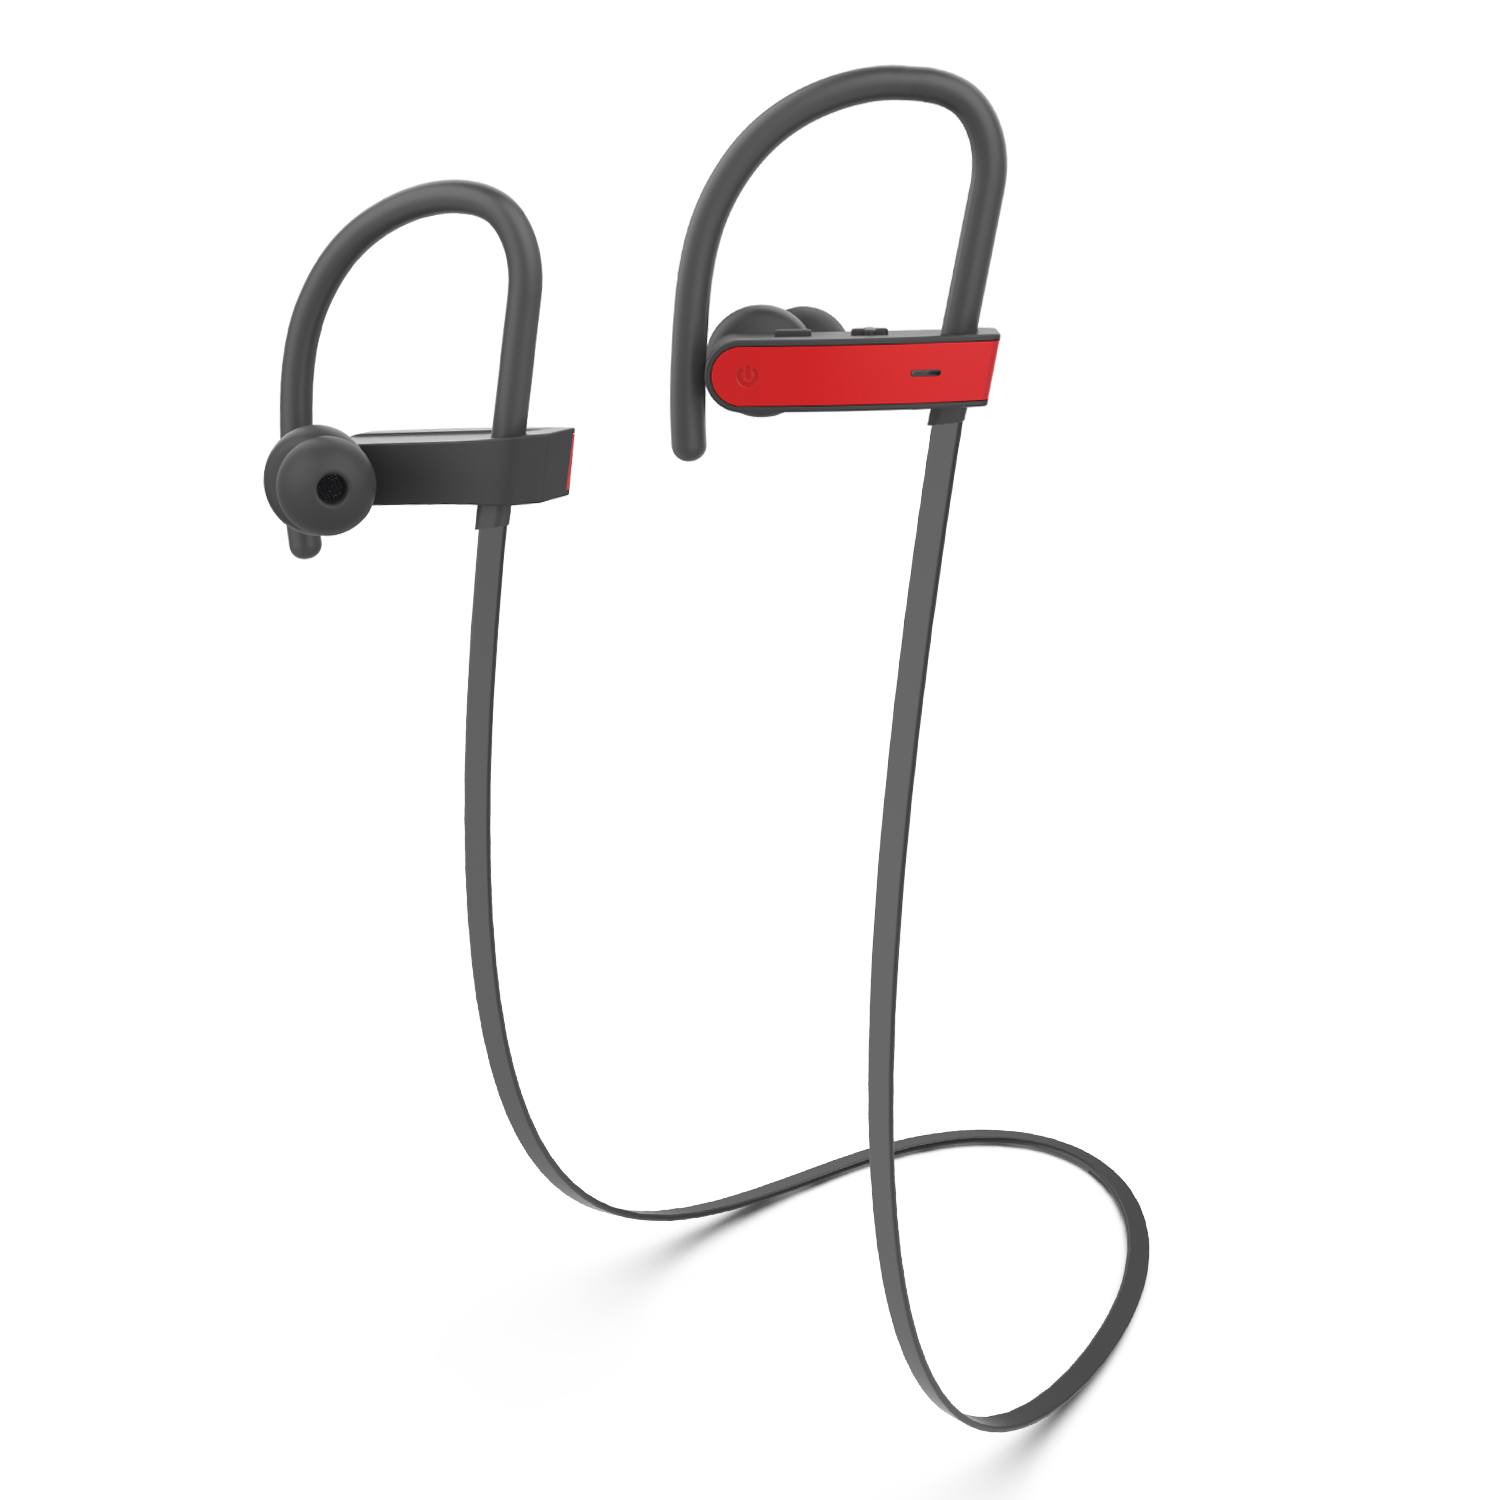 Kinlan IPX7 Waterproof Bluetooth Headphone Wireless Headset Stereo Earphone BE1015 red